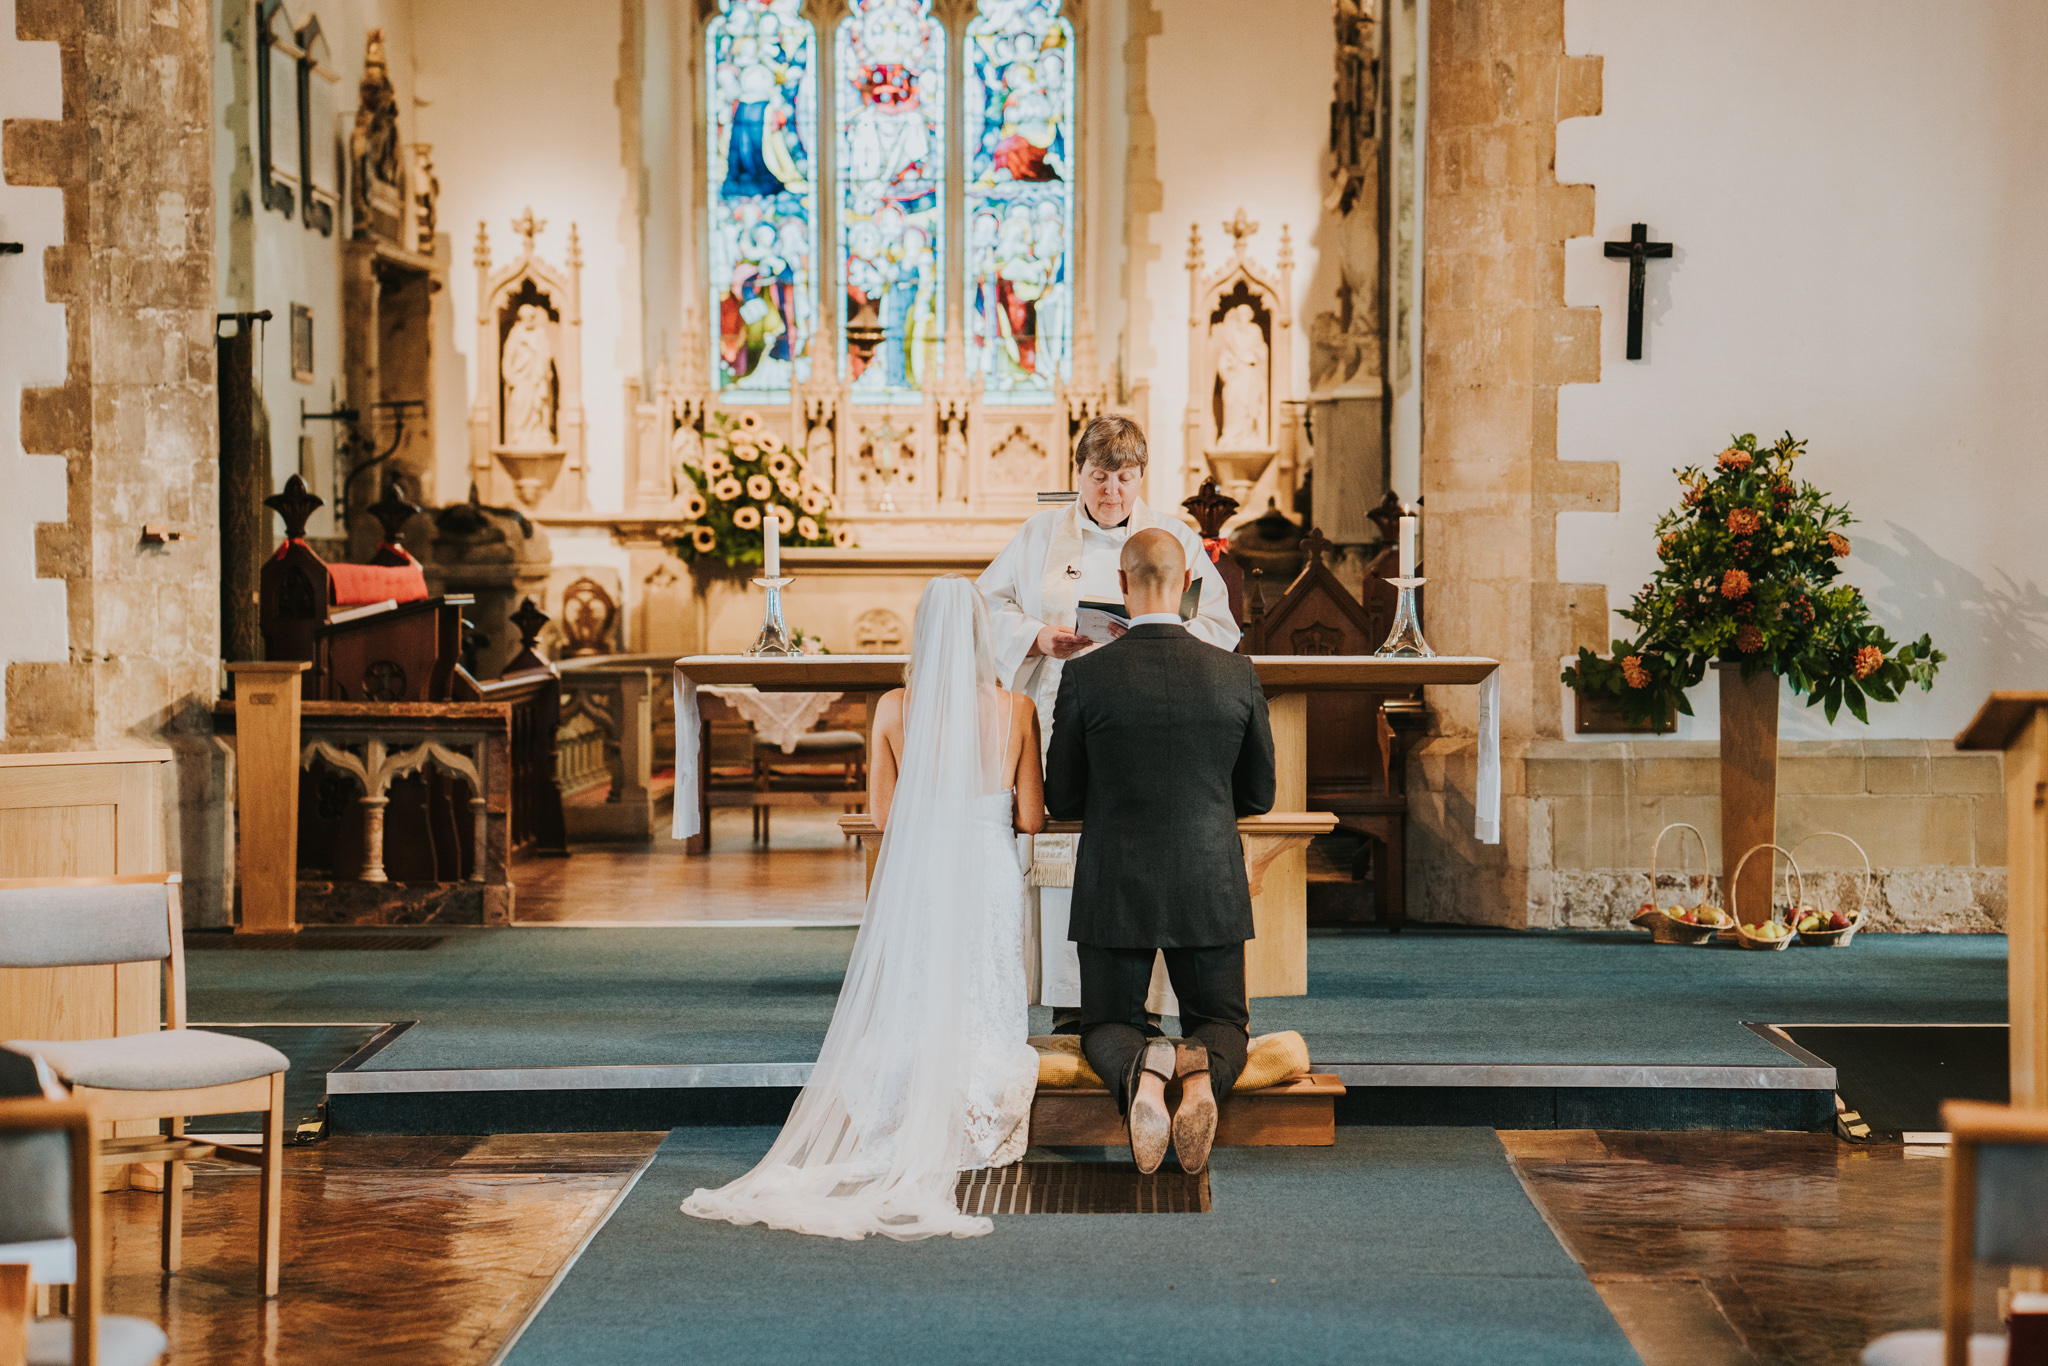 intimate-english-church-wedding-sarah-alex-colchester-essex-grace-elizabeth-colchester-essex-alternative-wedding-lifestyle-photographer-essex-suffolk-norfolk-devon (55 of 92).jpg